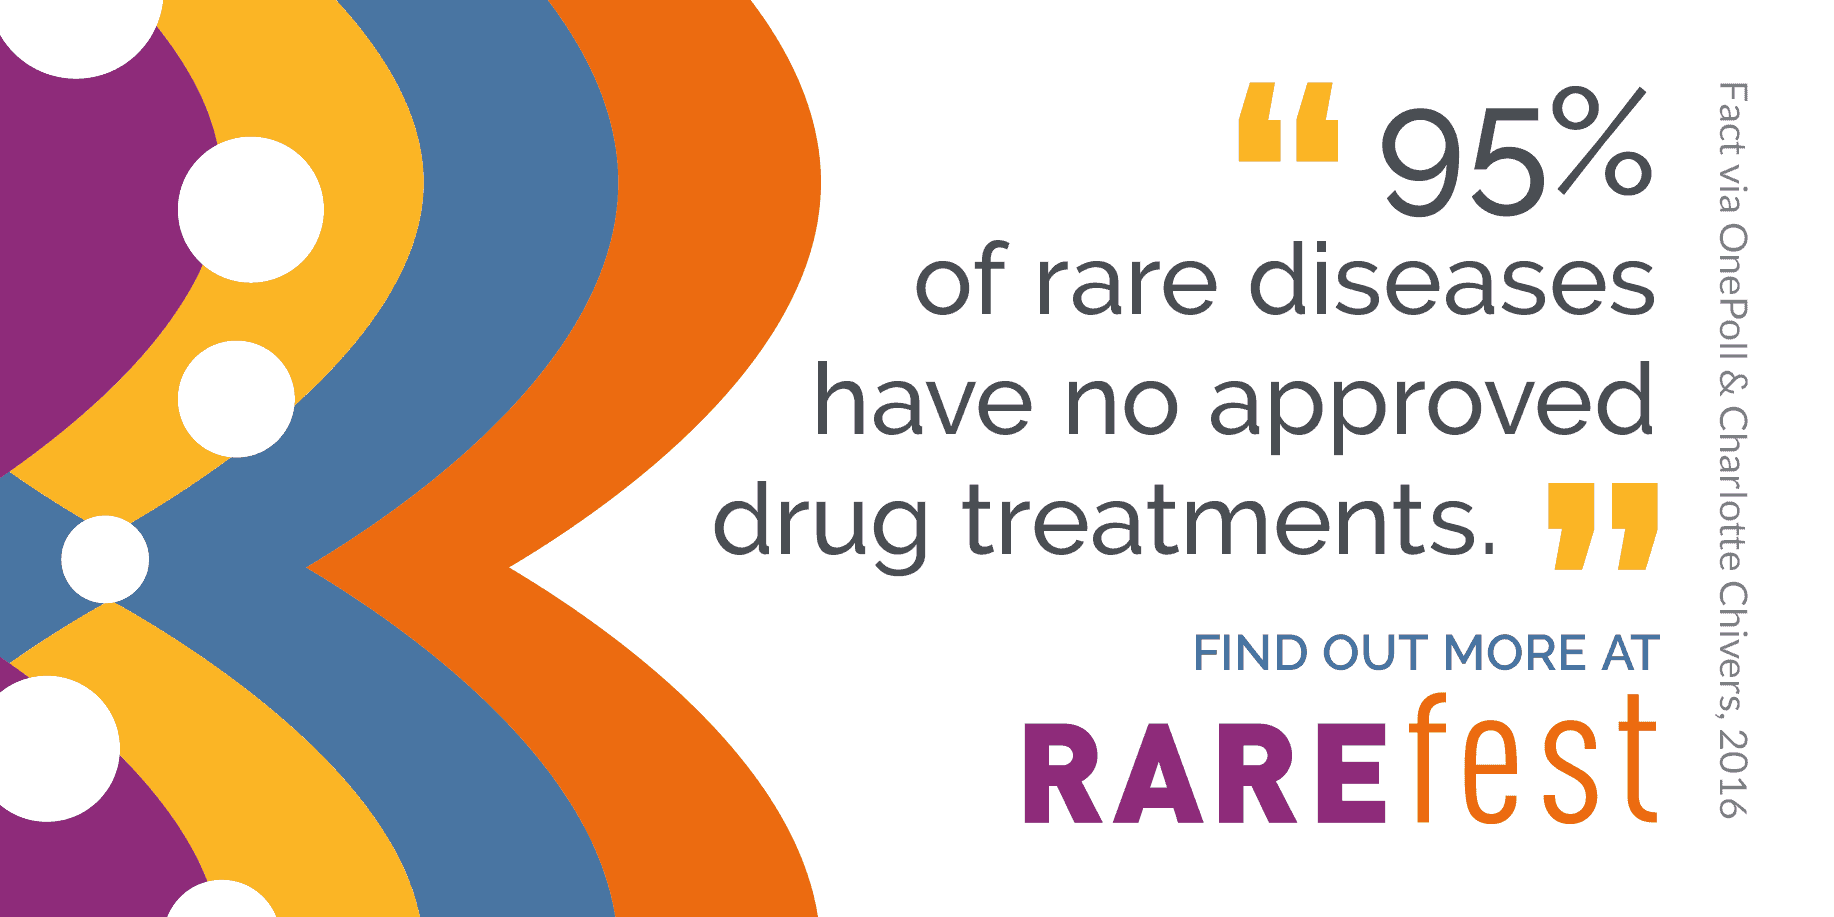 Graphic containing a fact about rare diseases